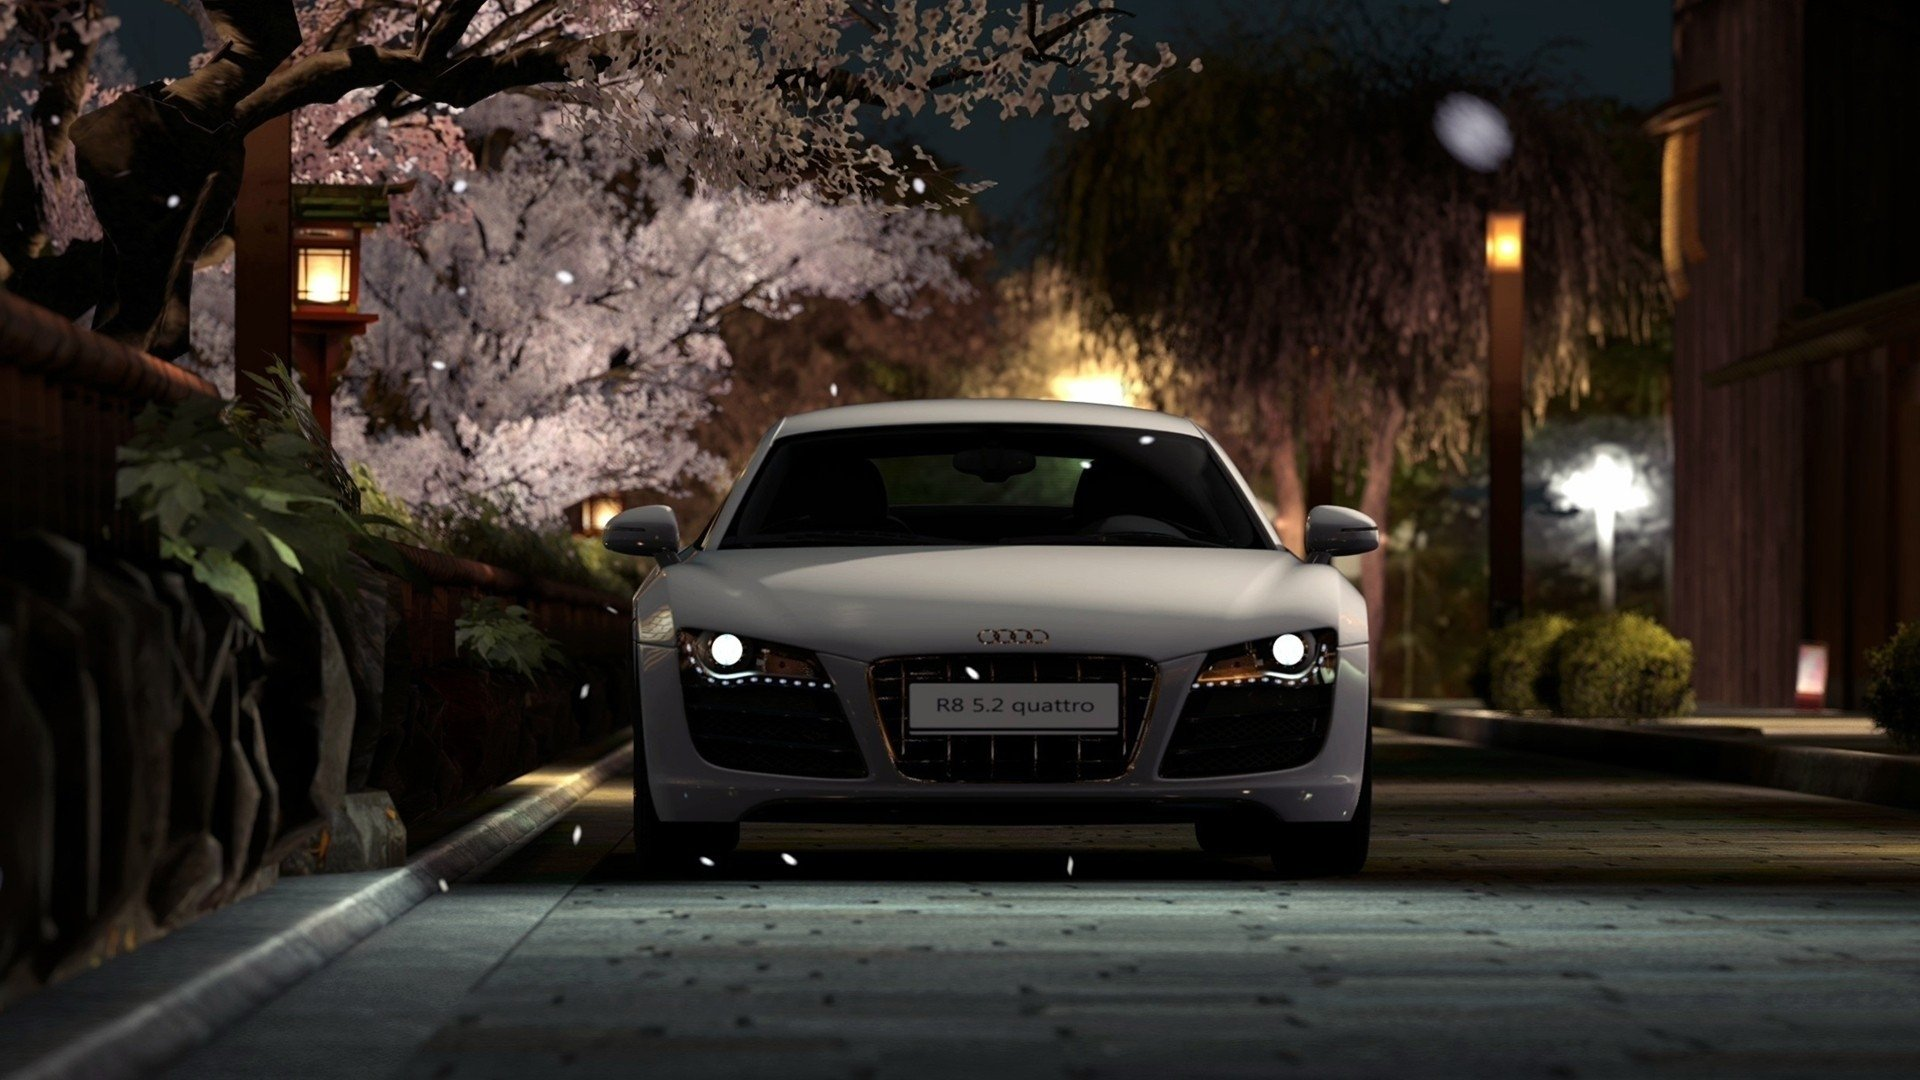 Dual Screen Car Wallpaper Audi R8 Hd Wallpaper Background Image 1920x1080 Id